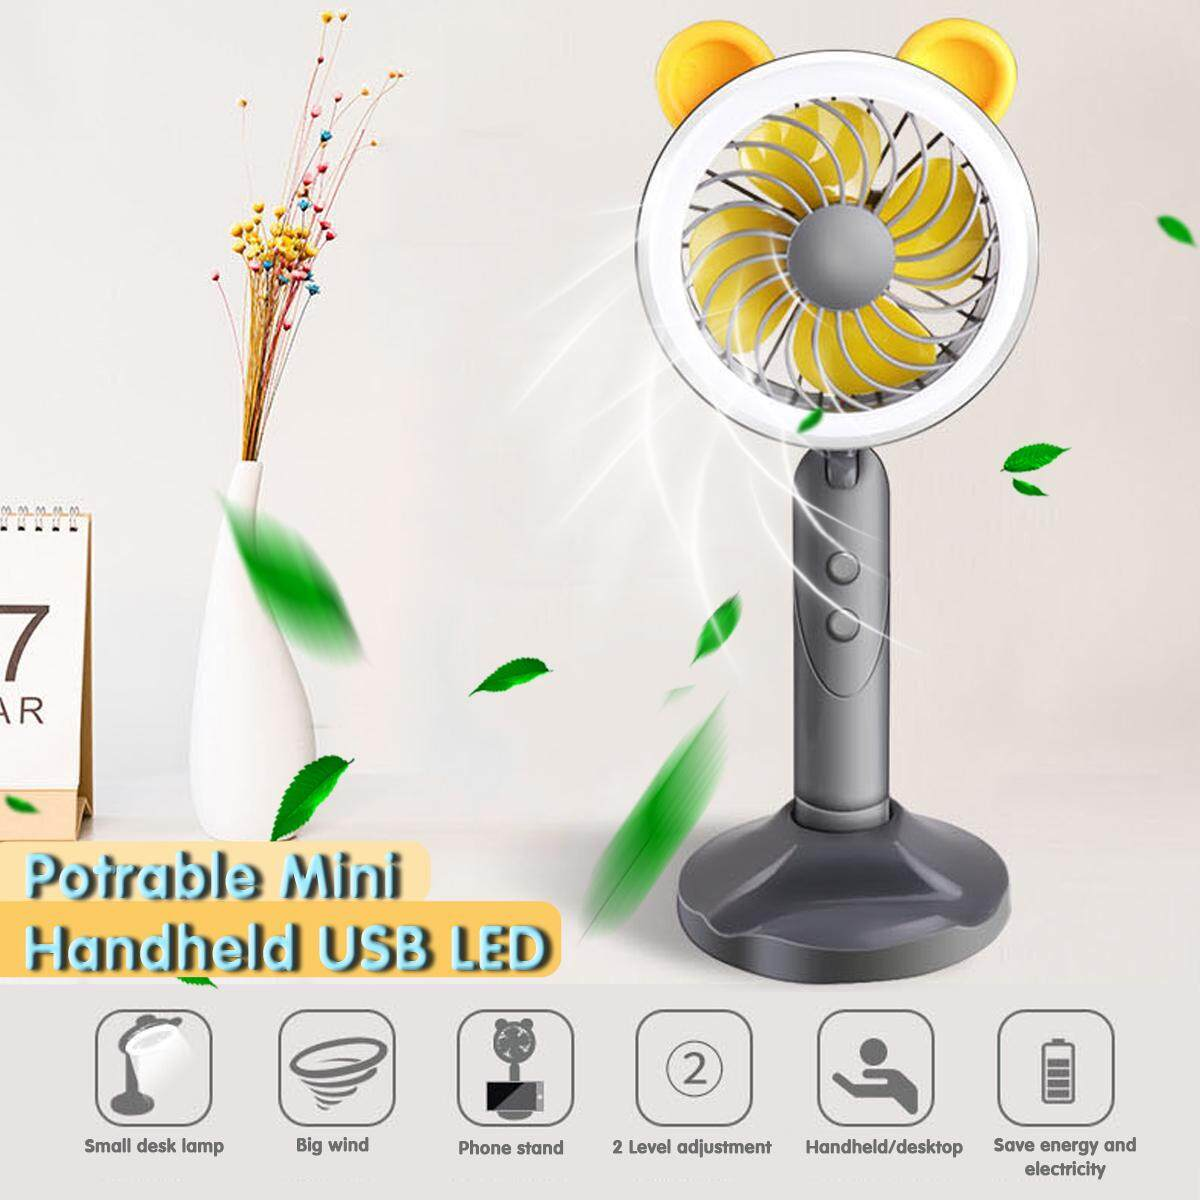 【Free Shipping + Super Deal】Potrable Mini Handheld USB Fan Desk Fan With LED Filling Light Phone Holder